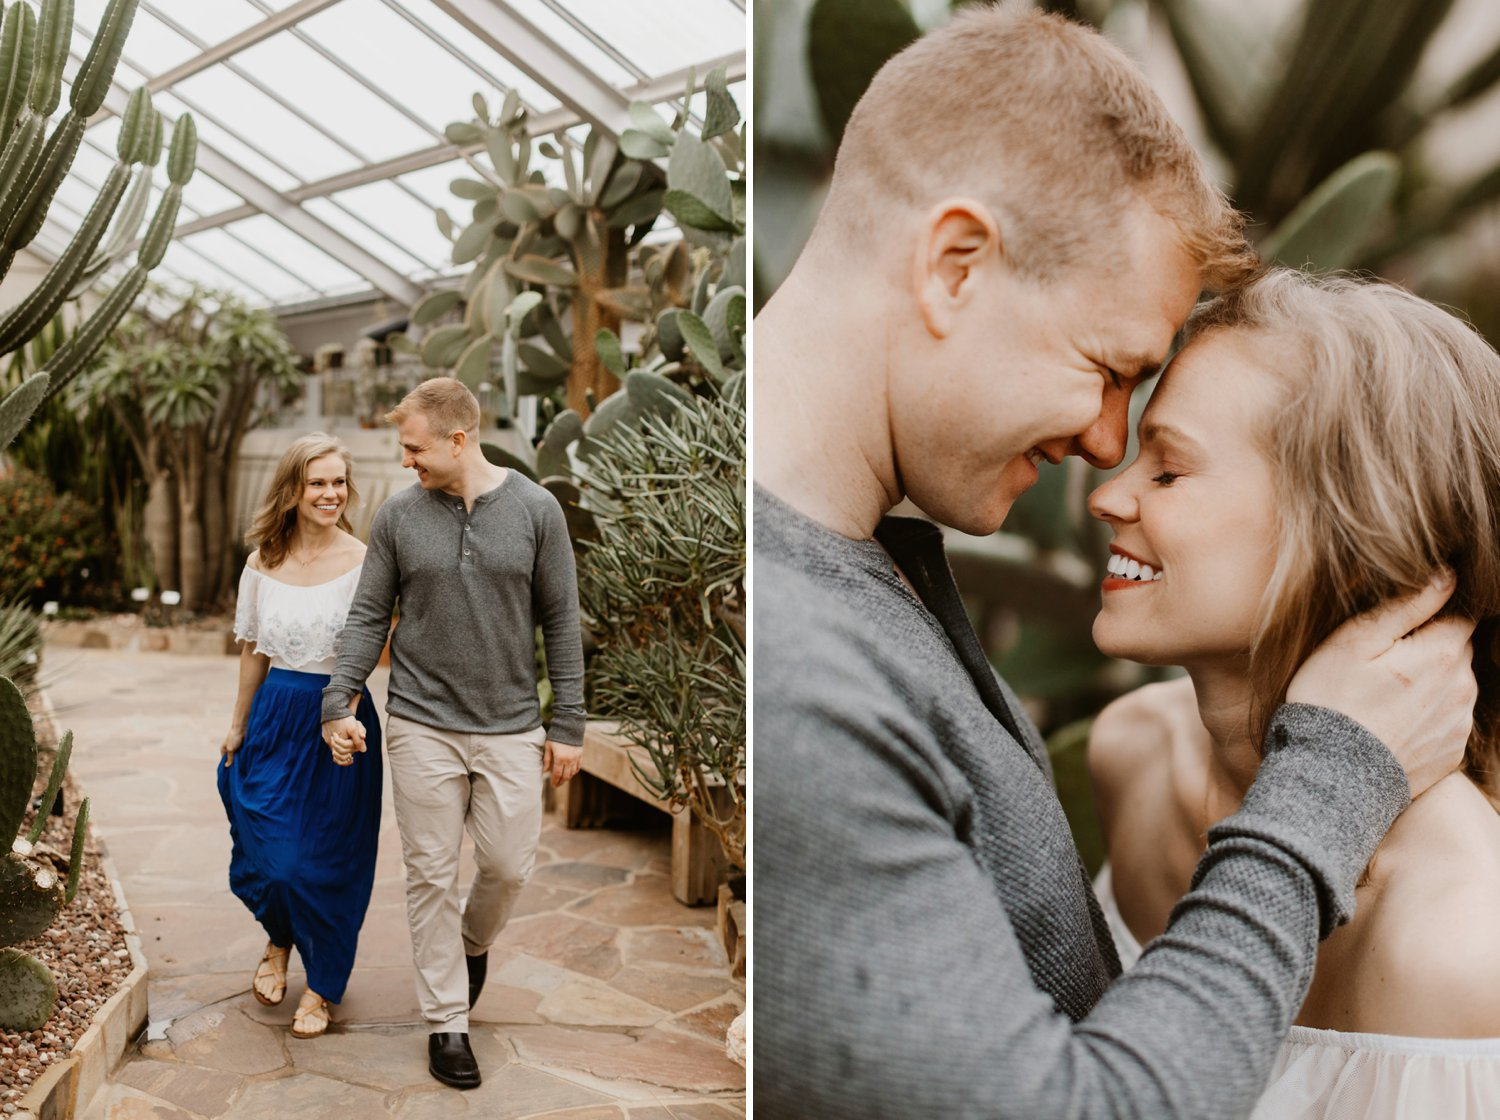 Rawlings Conservatory engagement session Baltimore engagement photographer